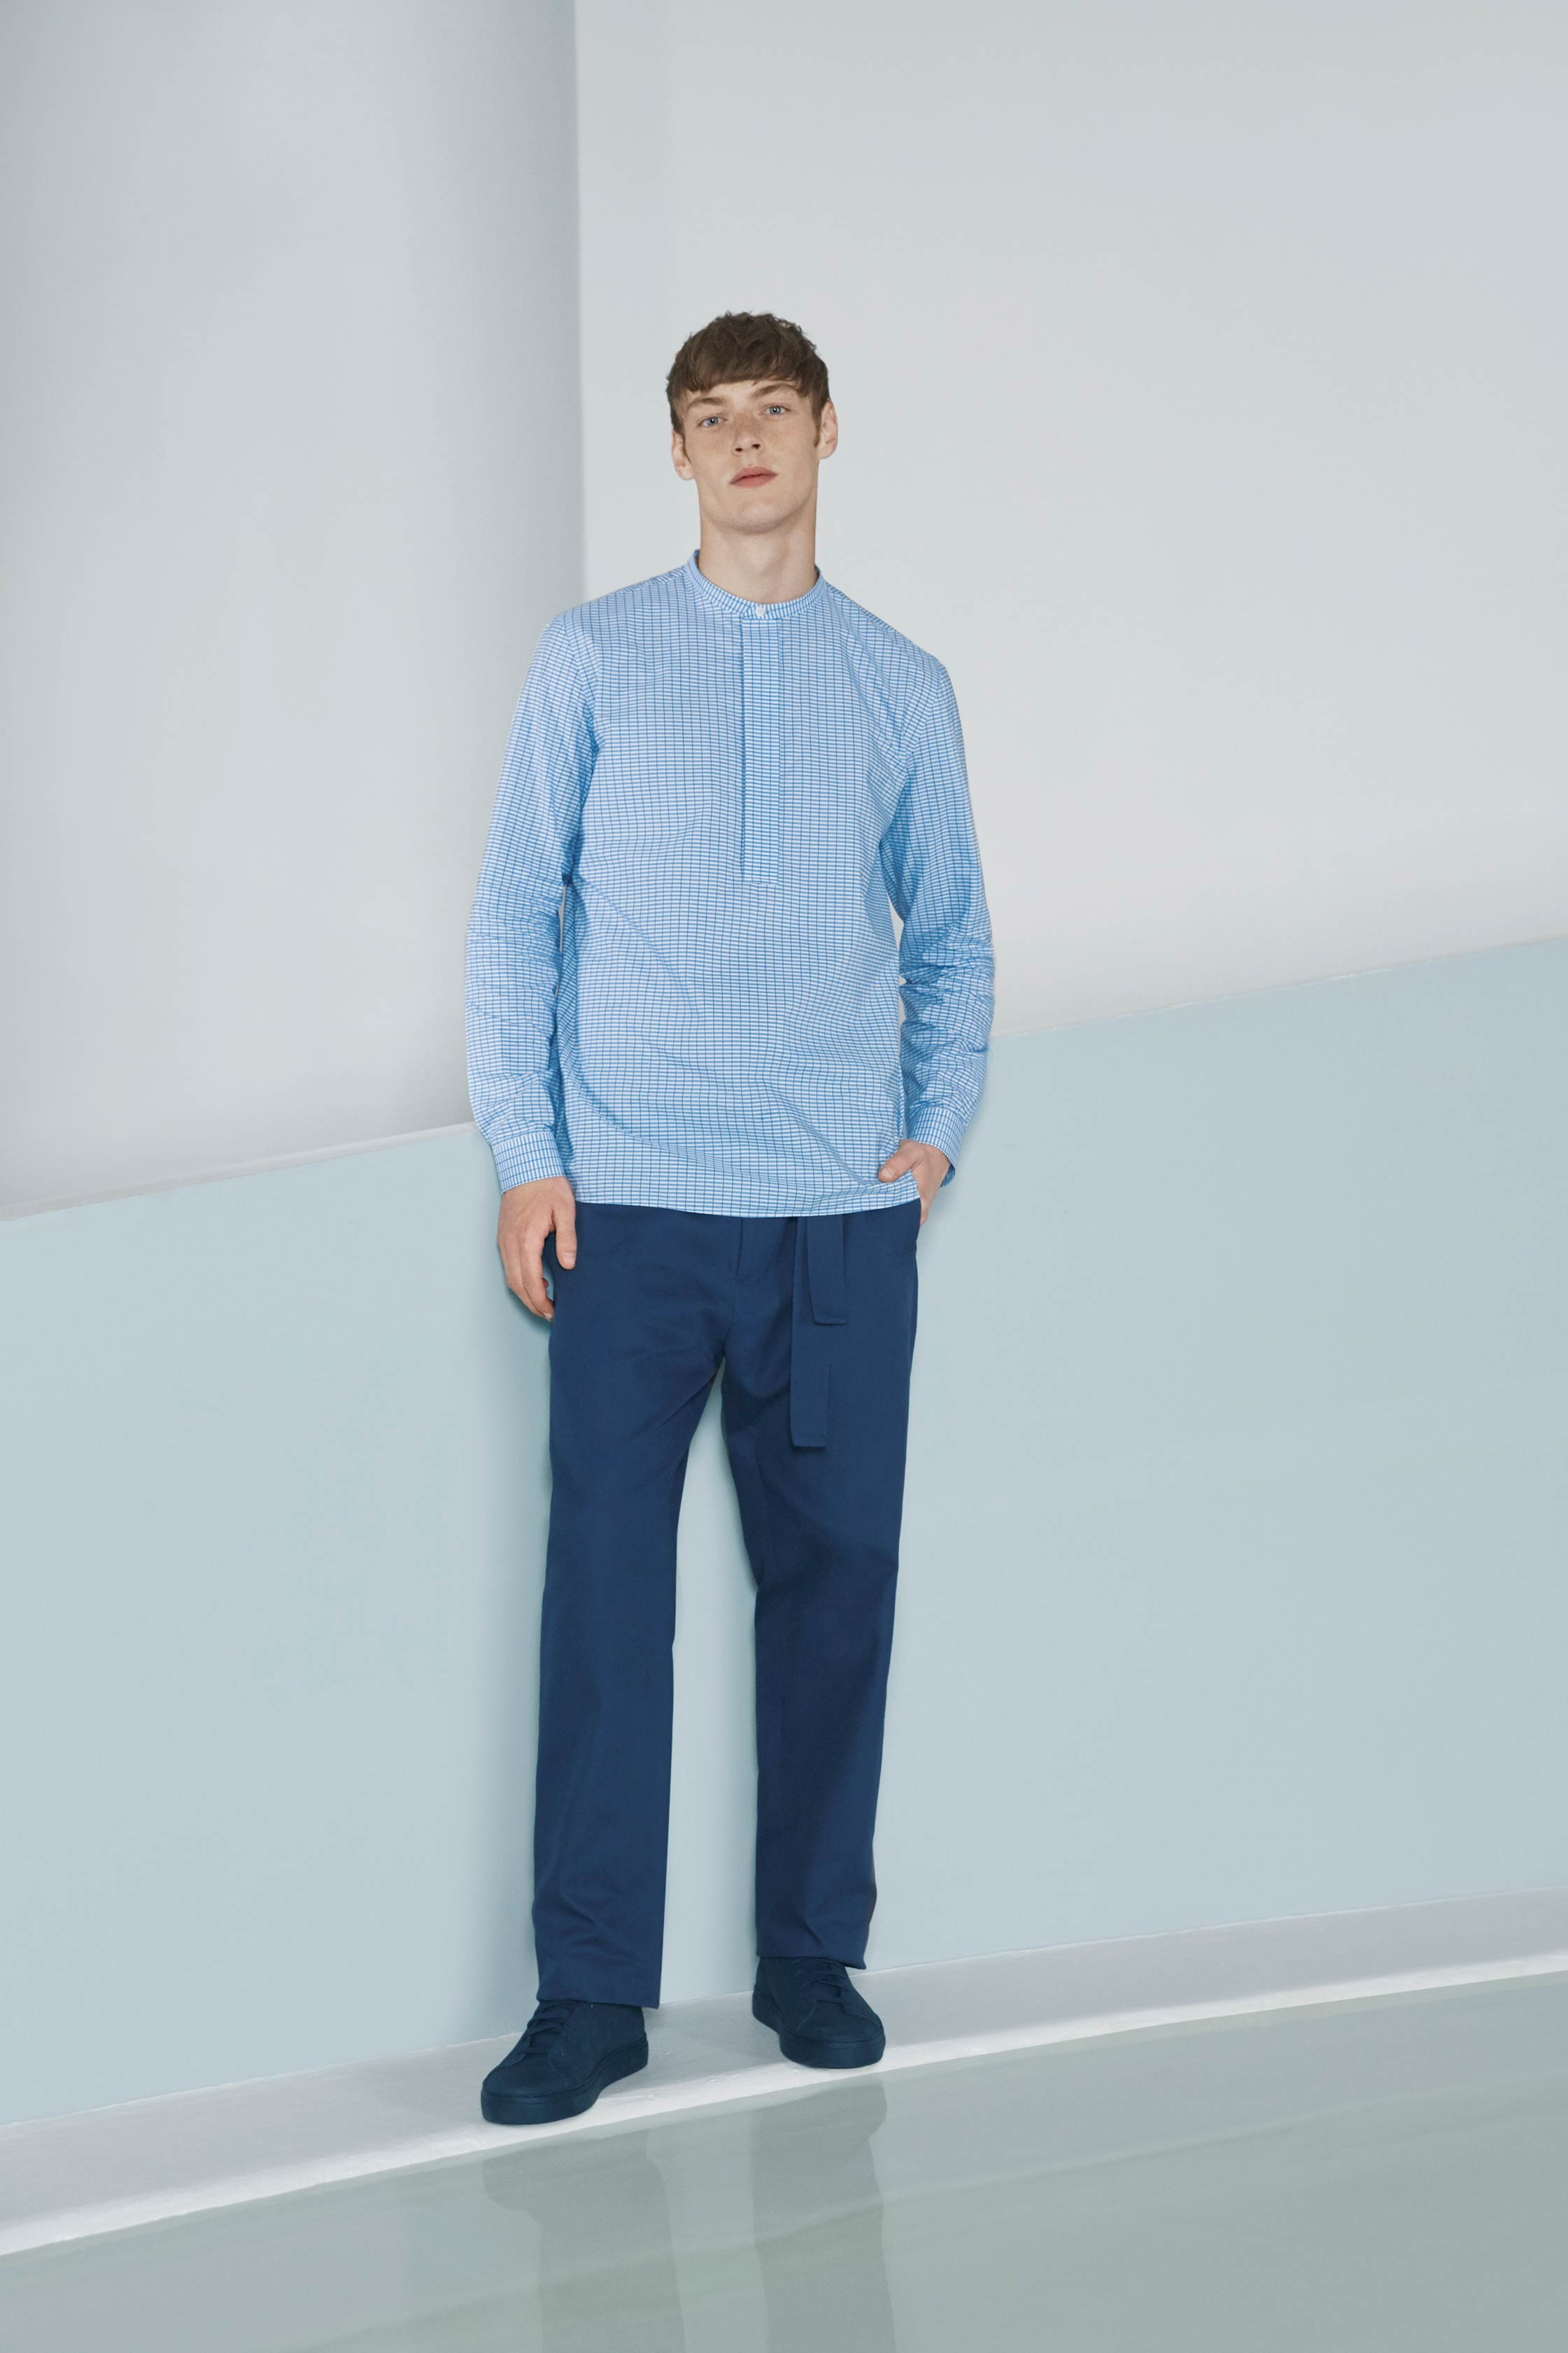 cos-x-agnes-martin-mens-collection-5